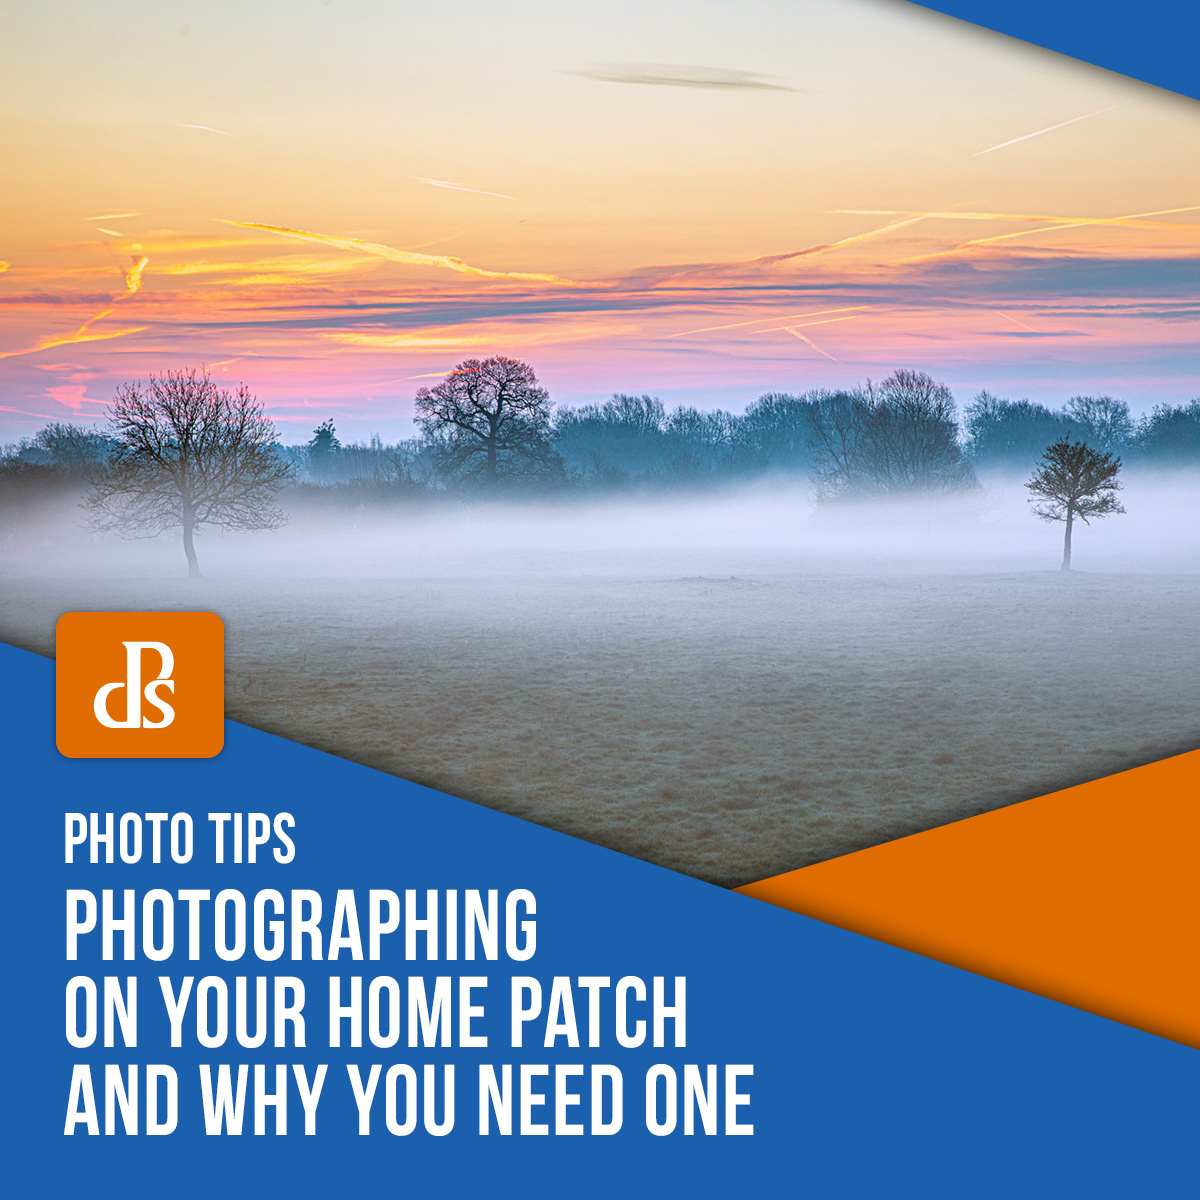 dps-photographing-on-your-home-patch